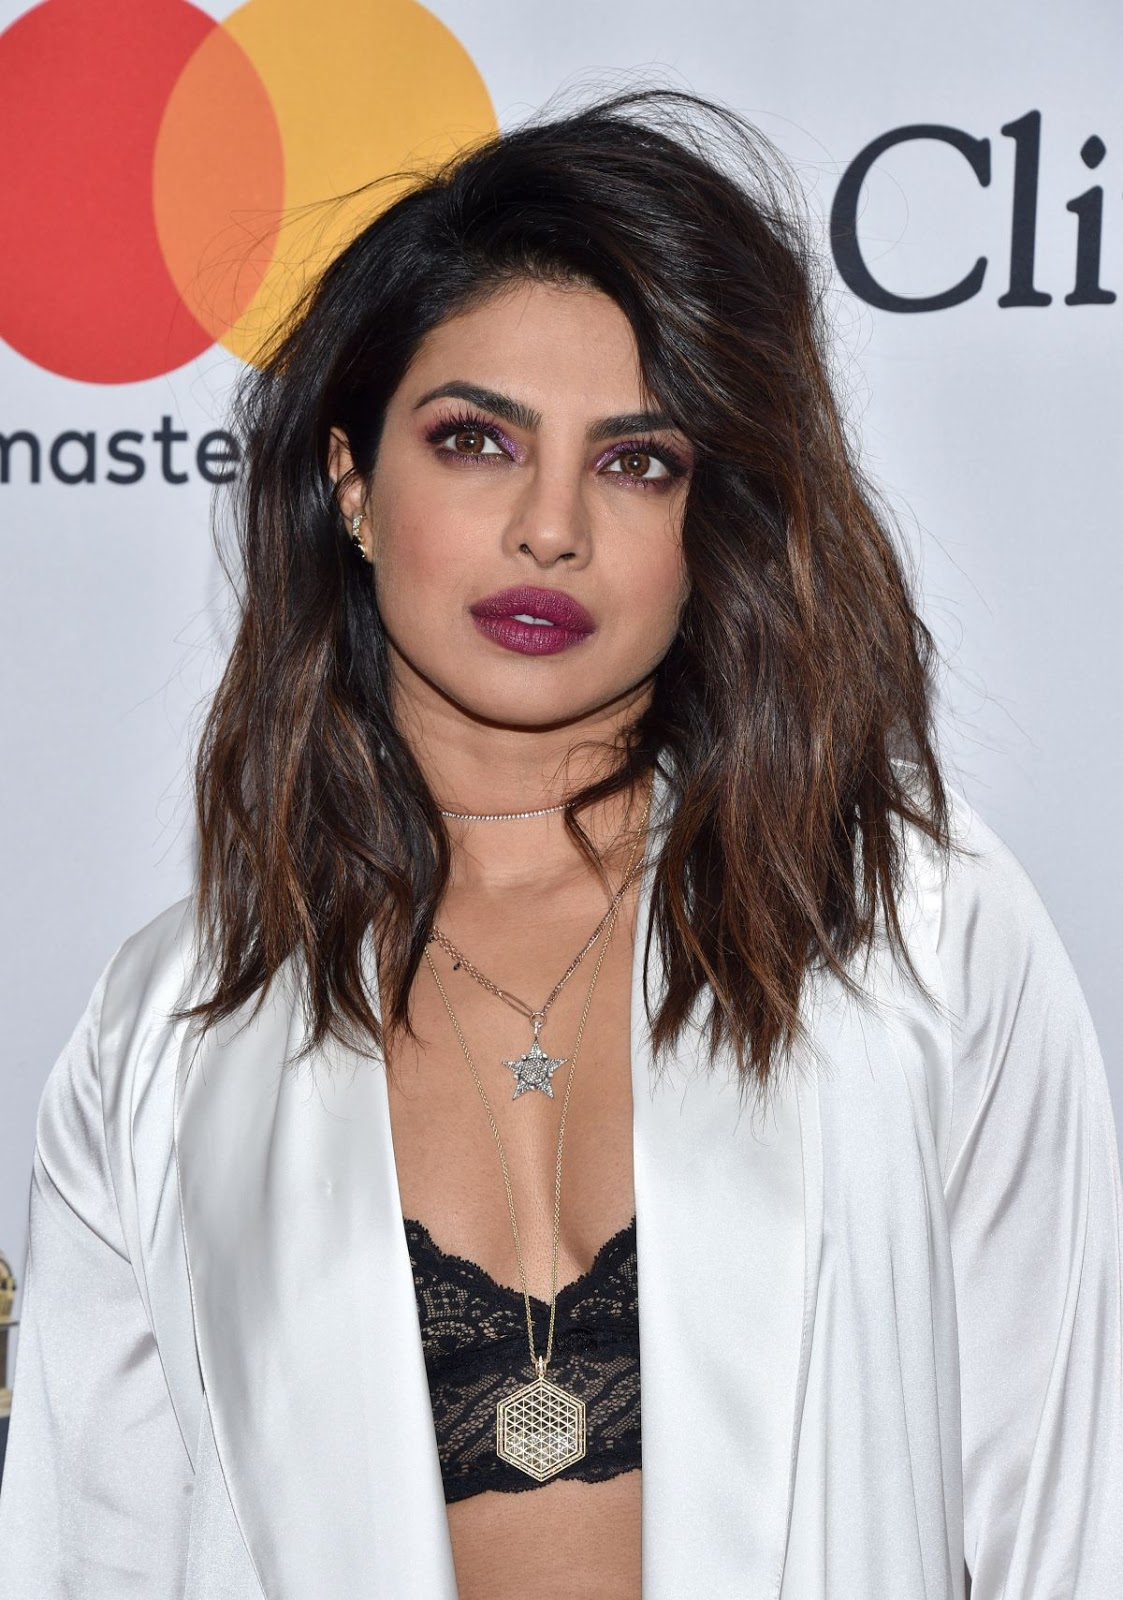 Priyanka Chopra flashes lace bralet at the 2018 Clive Davis Pre-Grammy Gala